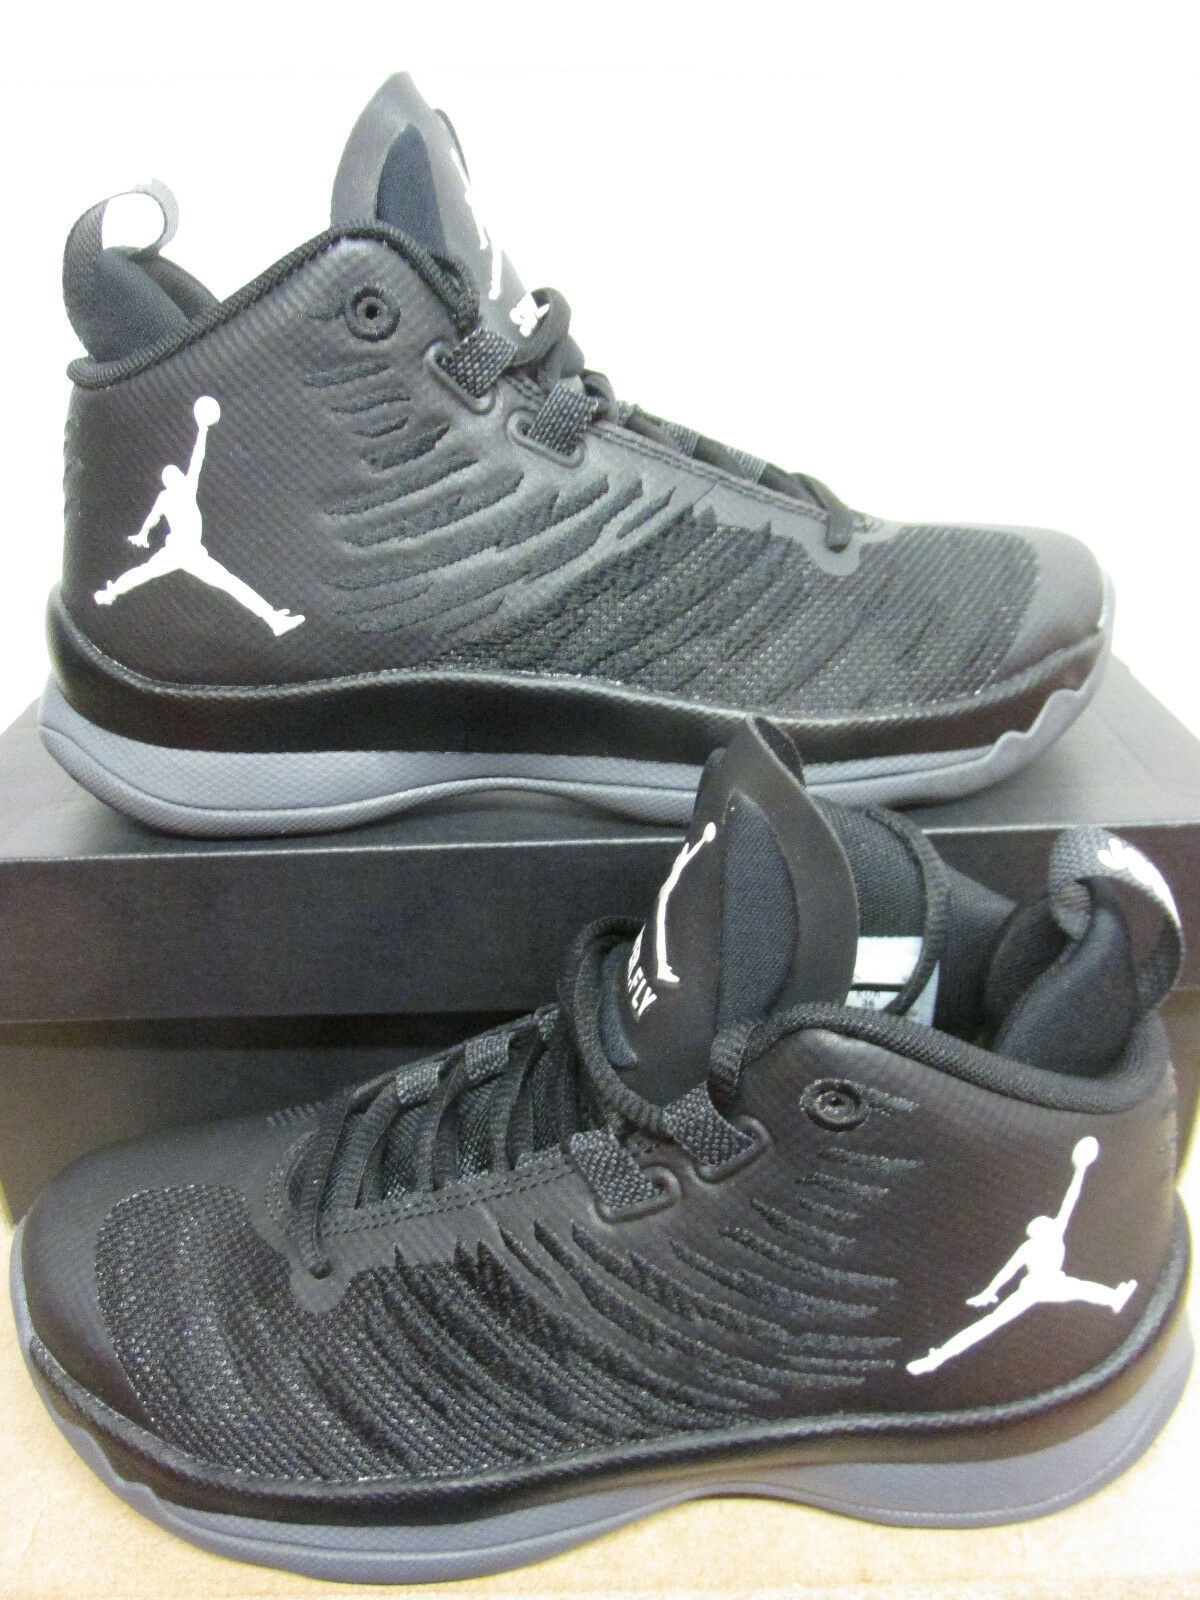 d37b8c68ab21 Nike Nike Nike Air Jordan Super.Fly 5 BG Hi Top Basketball Trainers 844689  005